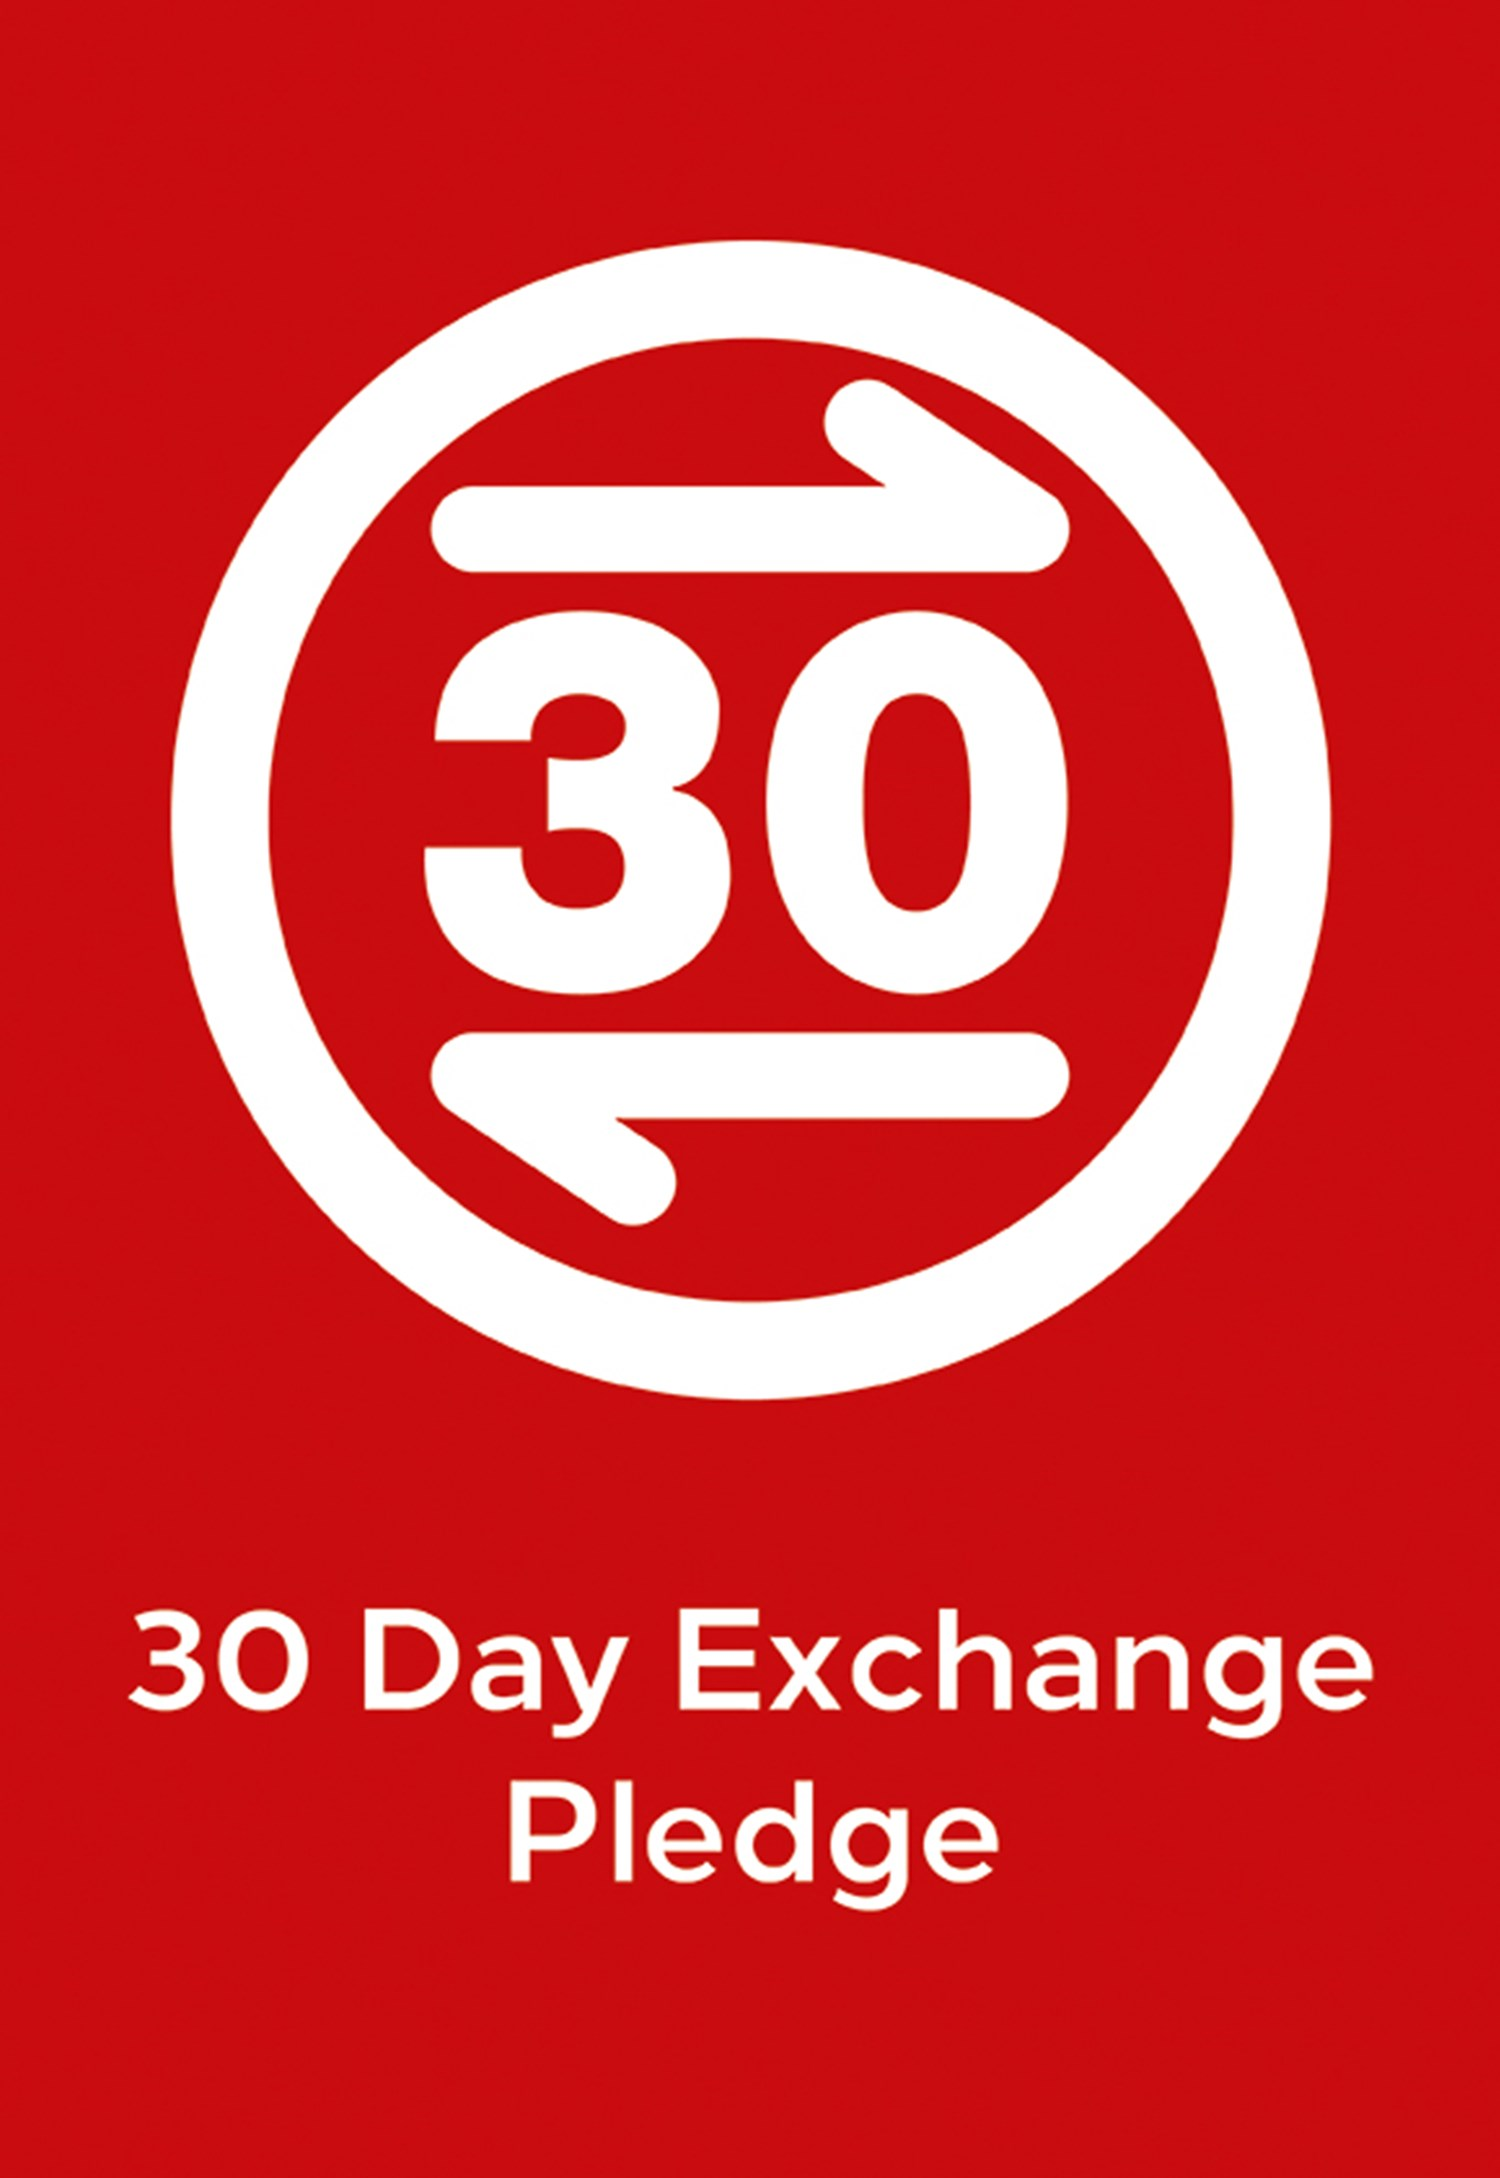 30 Day Exchange Pledge  We believe in our cars. That's why if your car develops a mechanical or electrical fault in the first 30 days of ownership that can't be repaired to a satisfactory standard, we'll exchange it for another Network Q vehicle of the same value.